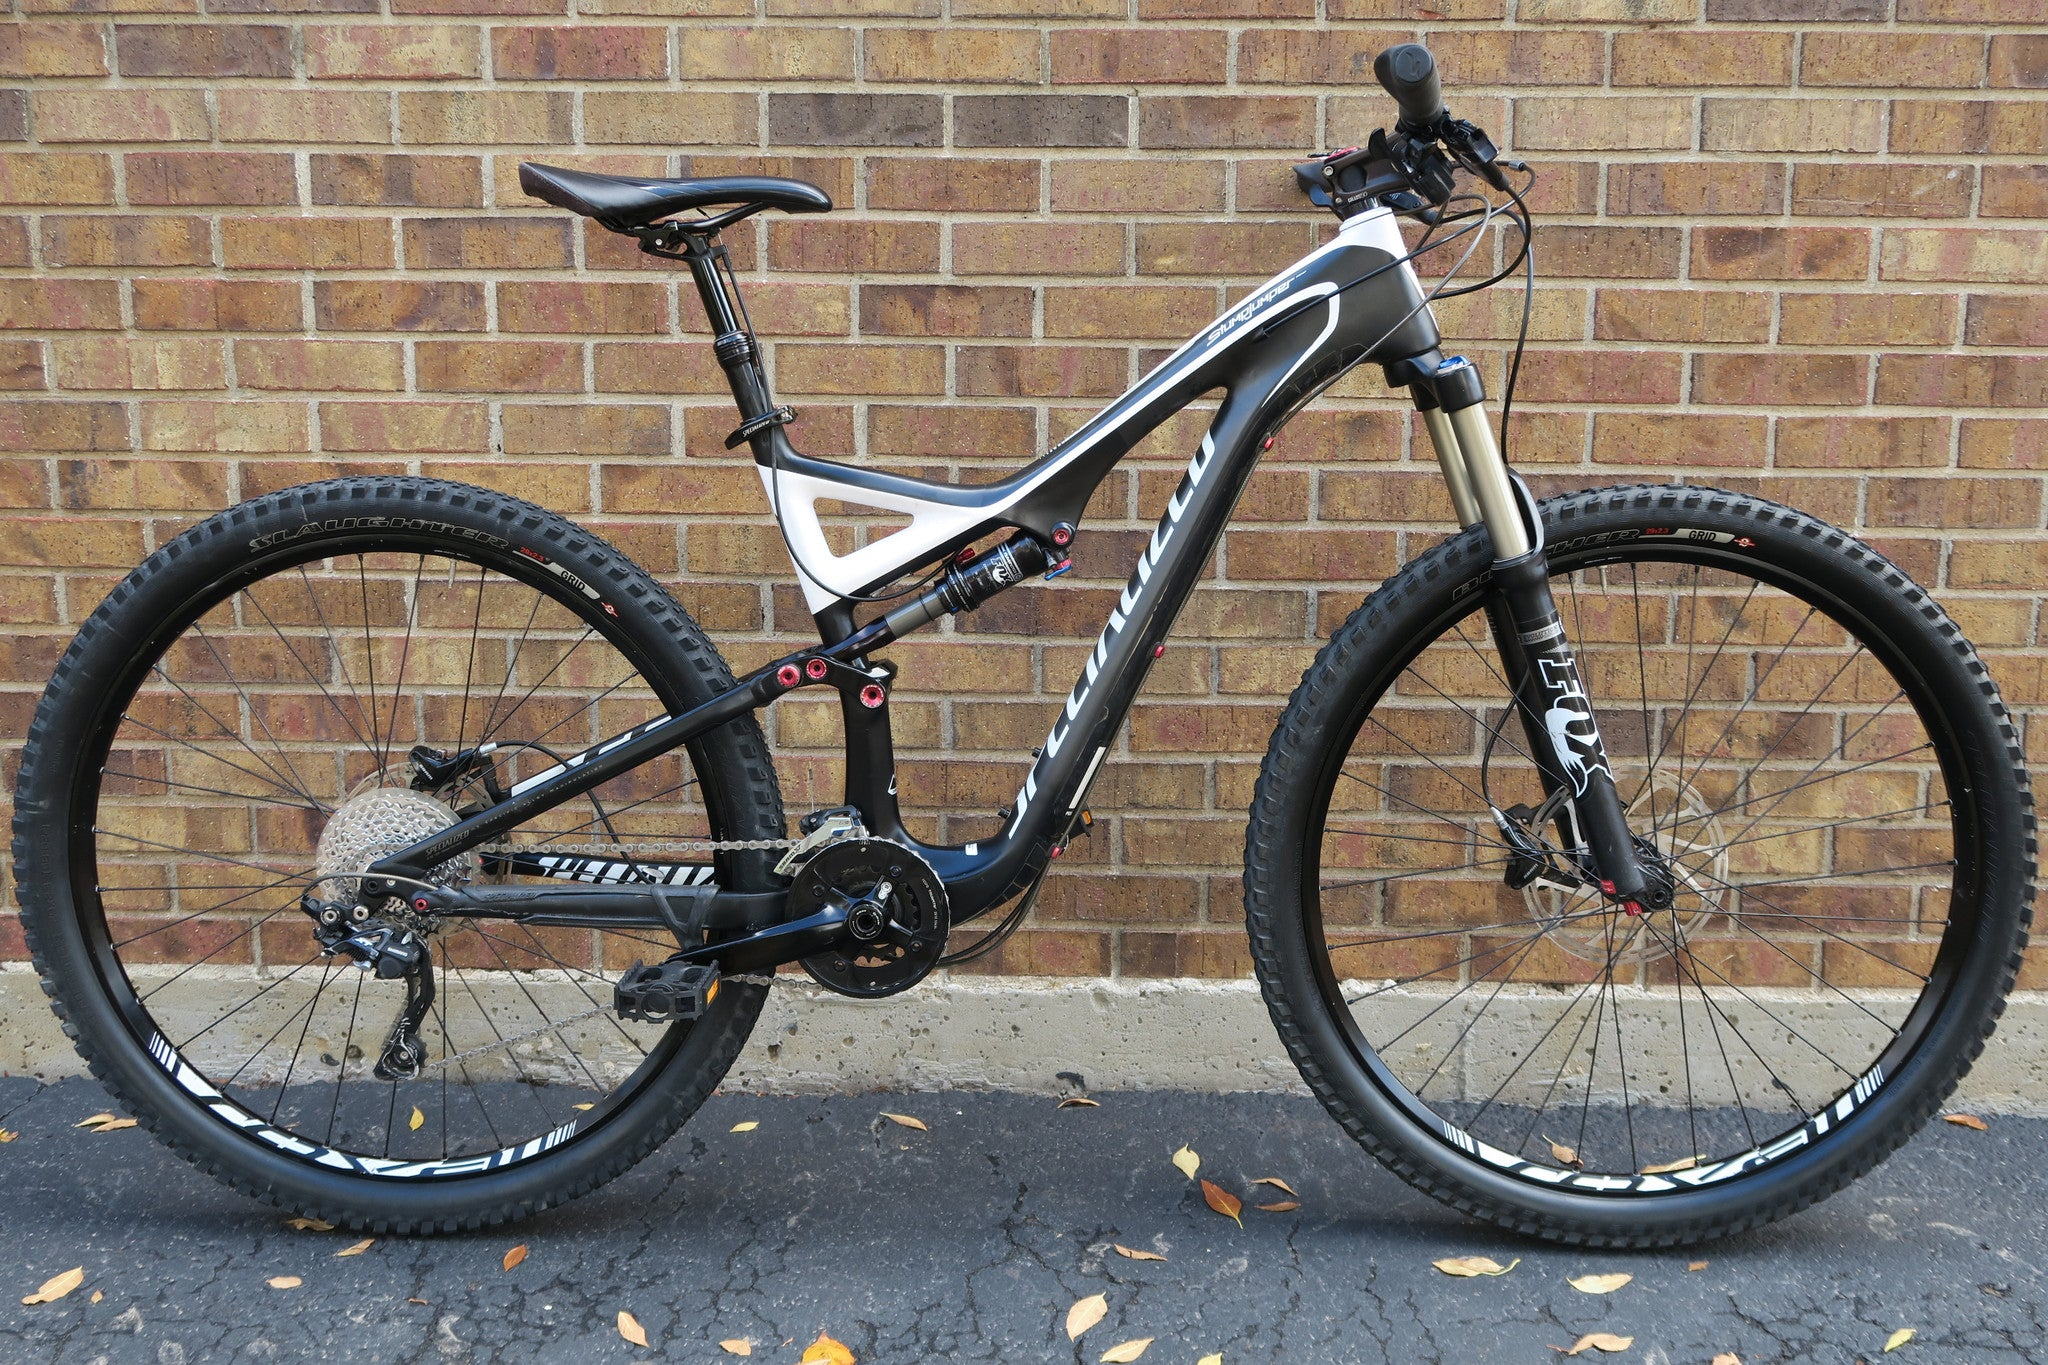 2013 SPECIALIZED STUMPJUMPER COMP CARBON 29